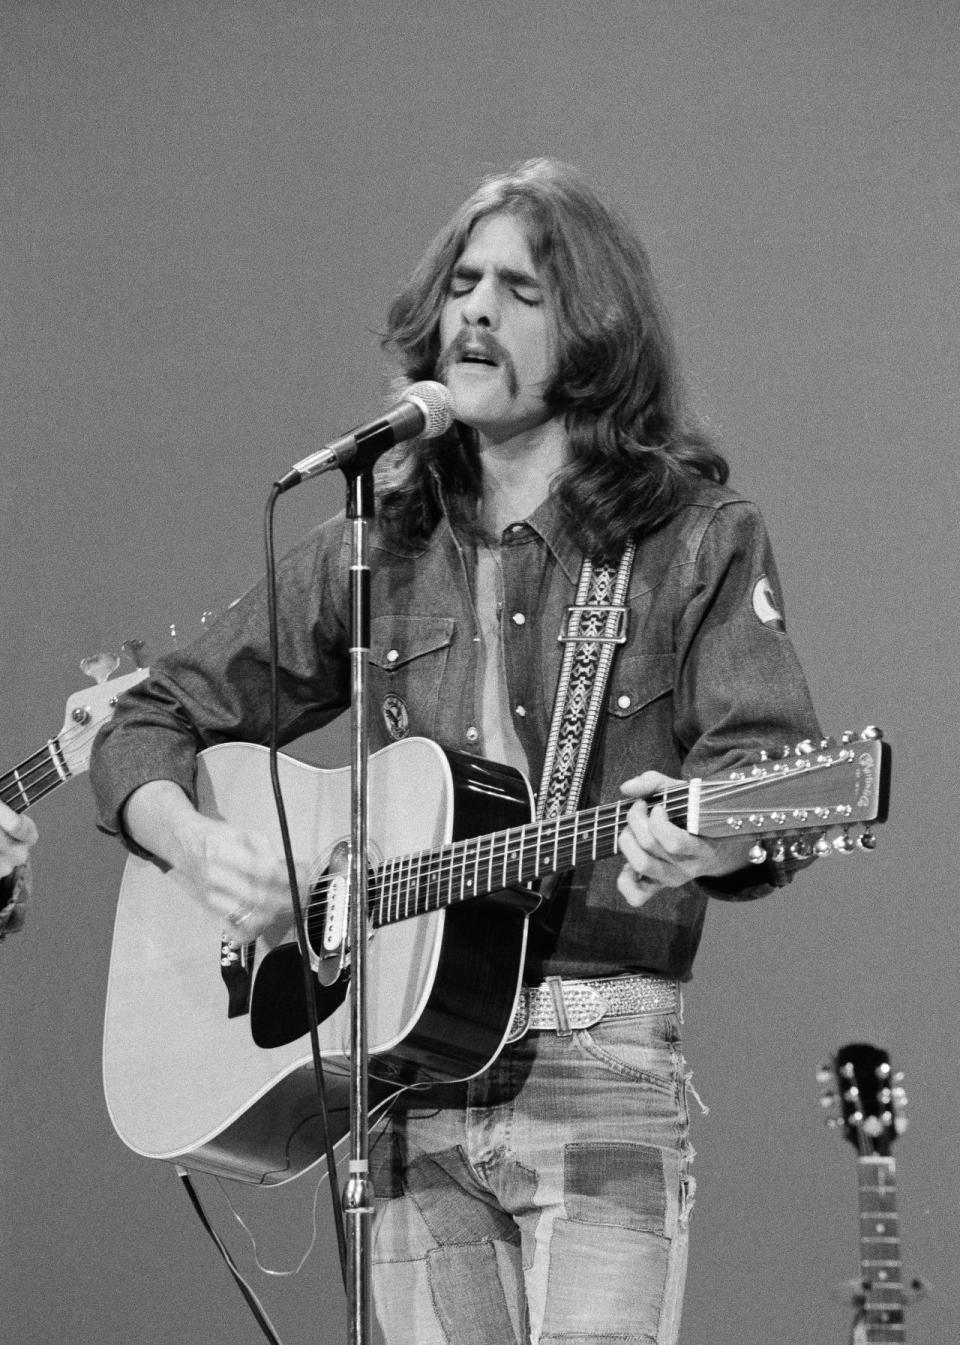 Glenn Frey was a founding member of the Eagles. He died Jan. 18 after suffering complications arising from rheumatoid arthritis, colitis, and pneumonia. He was 67. (Photo: Getty Images)